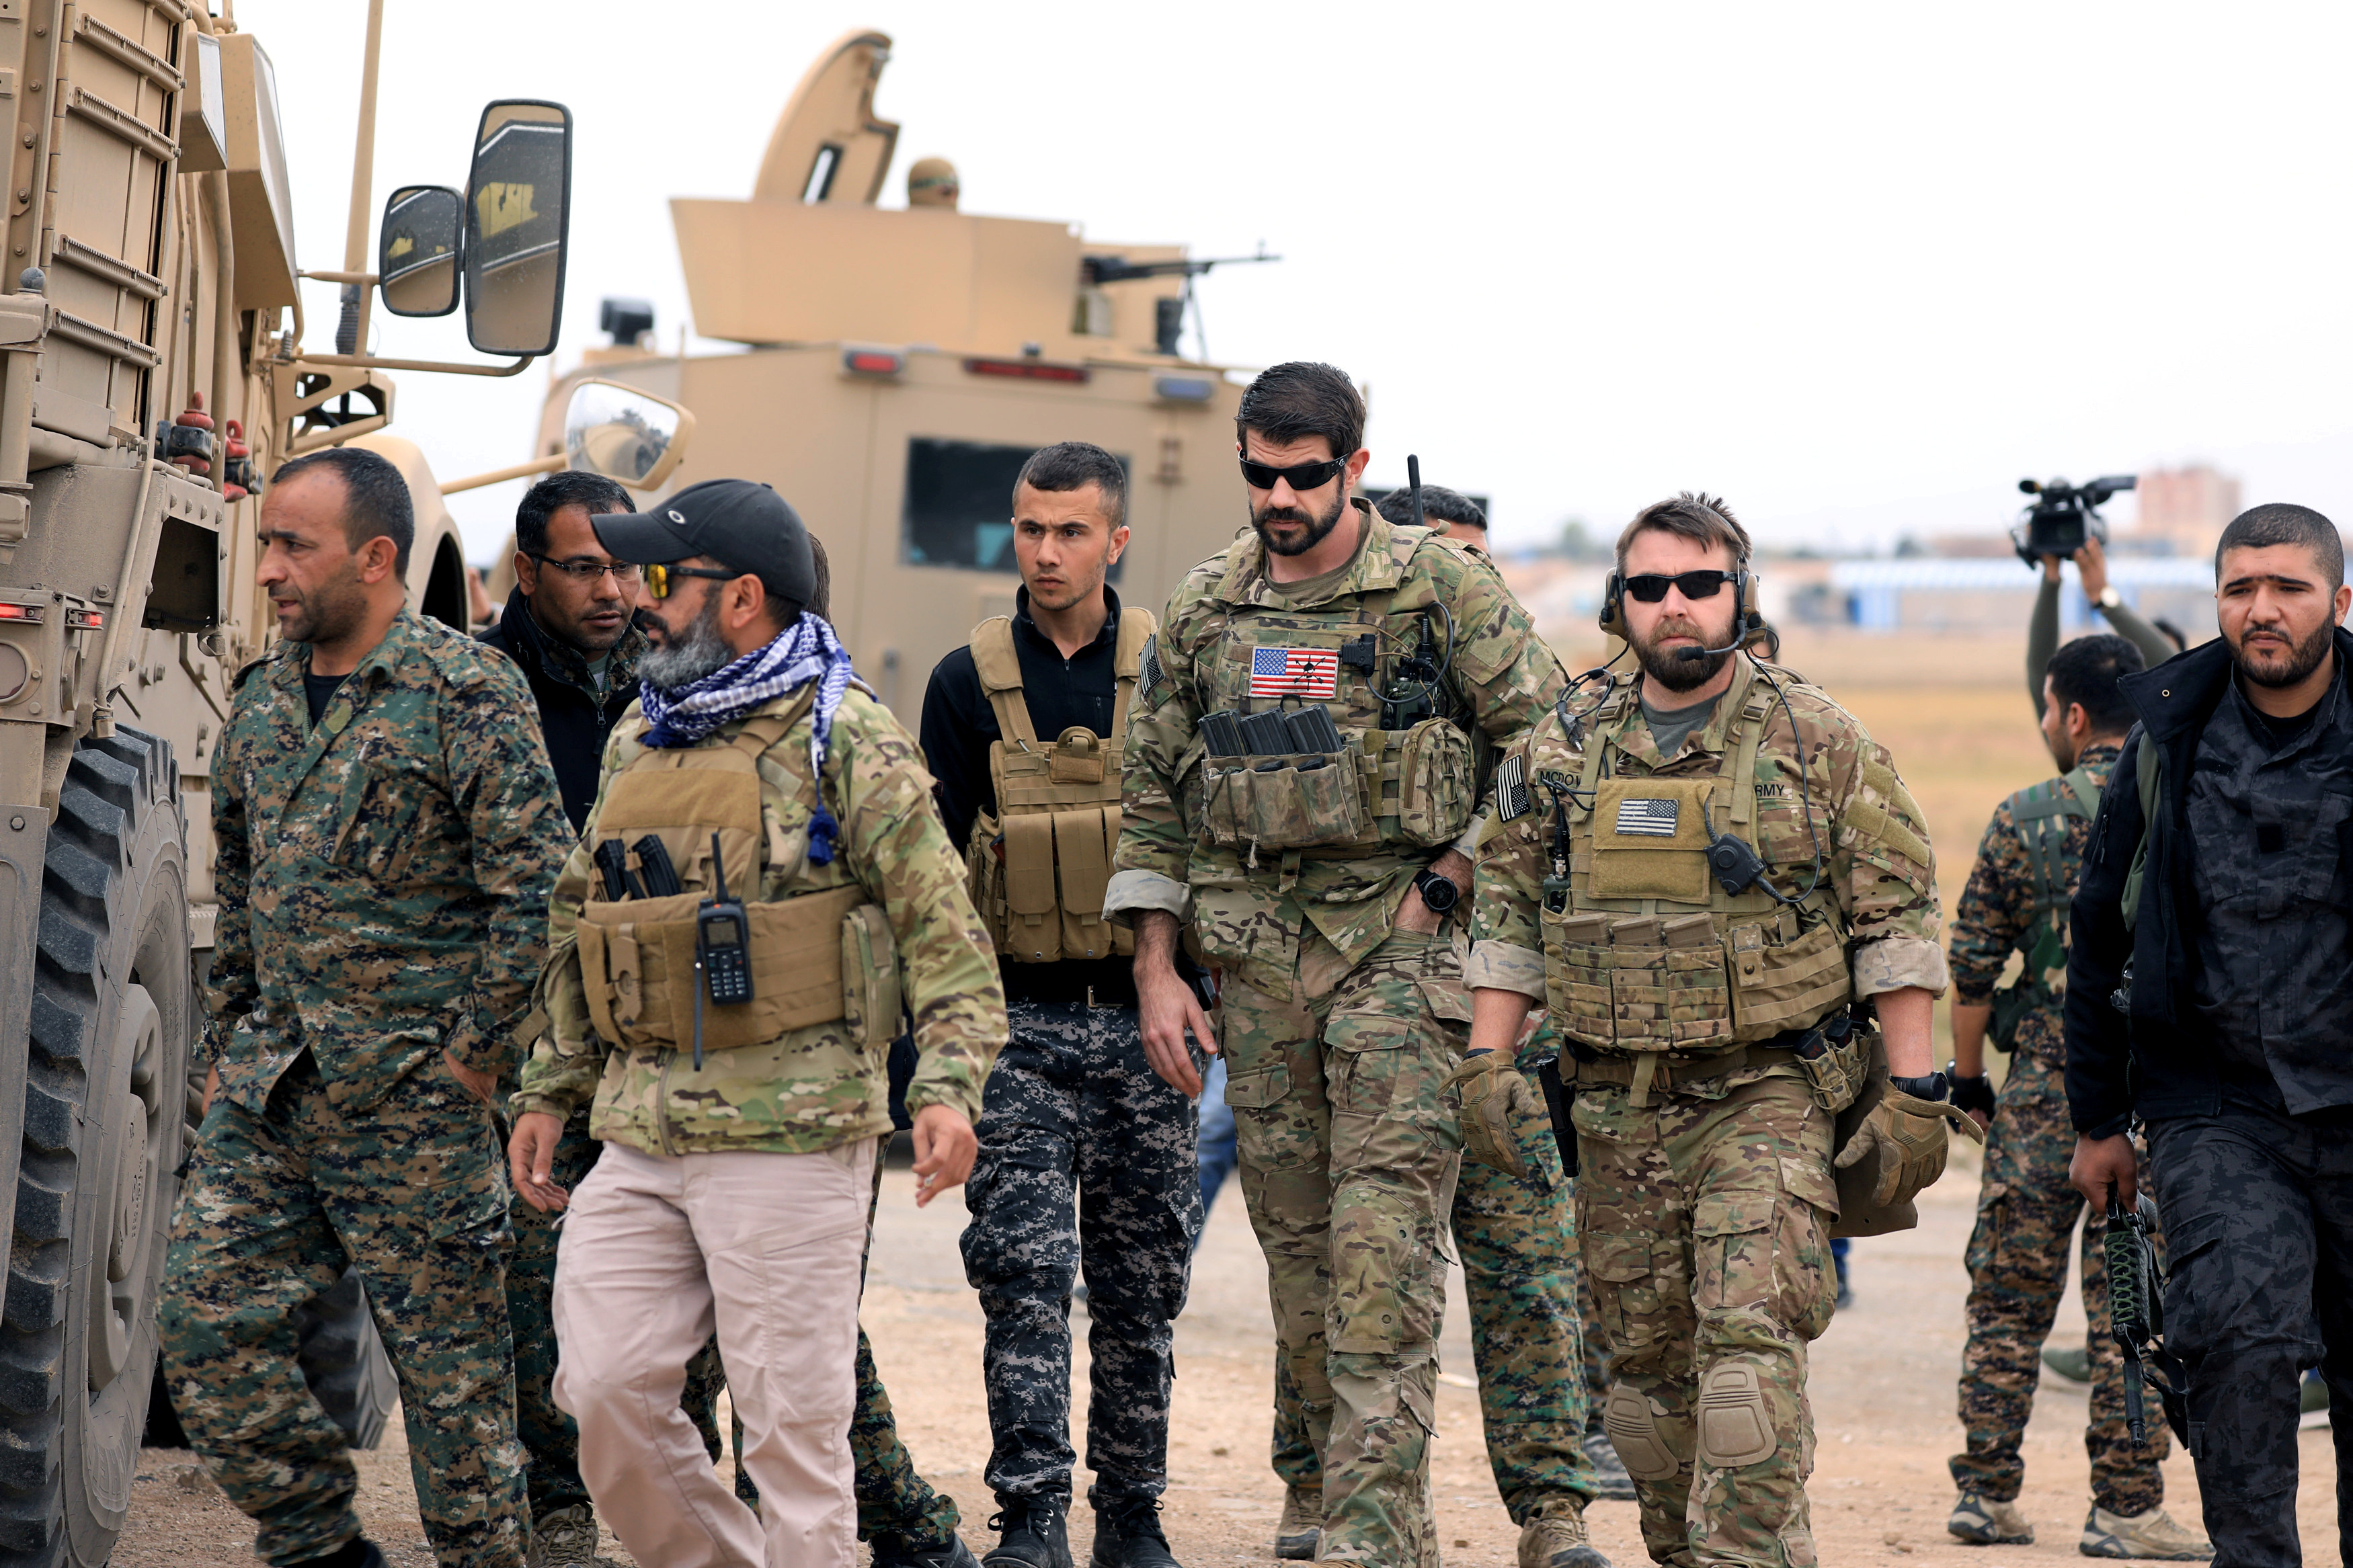 FILE PHOTO: Syrian Democratic Forces and U.S. troops are seen during a patrol near Turkish border in Hasakah, Syria November 4, 2018. REUTERS/Rodi Said/File Photo